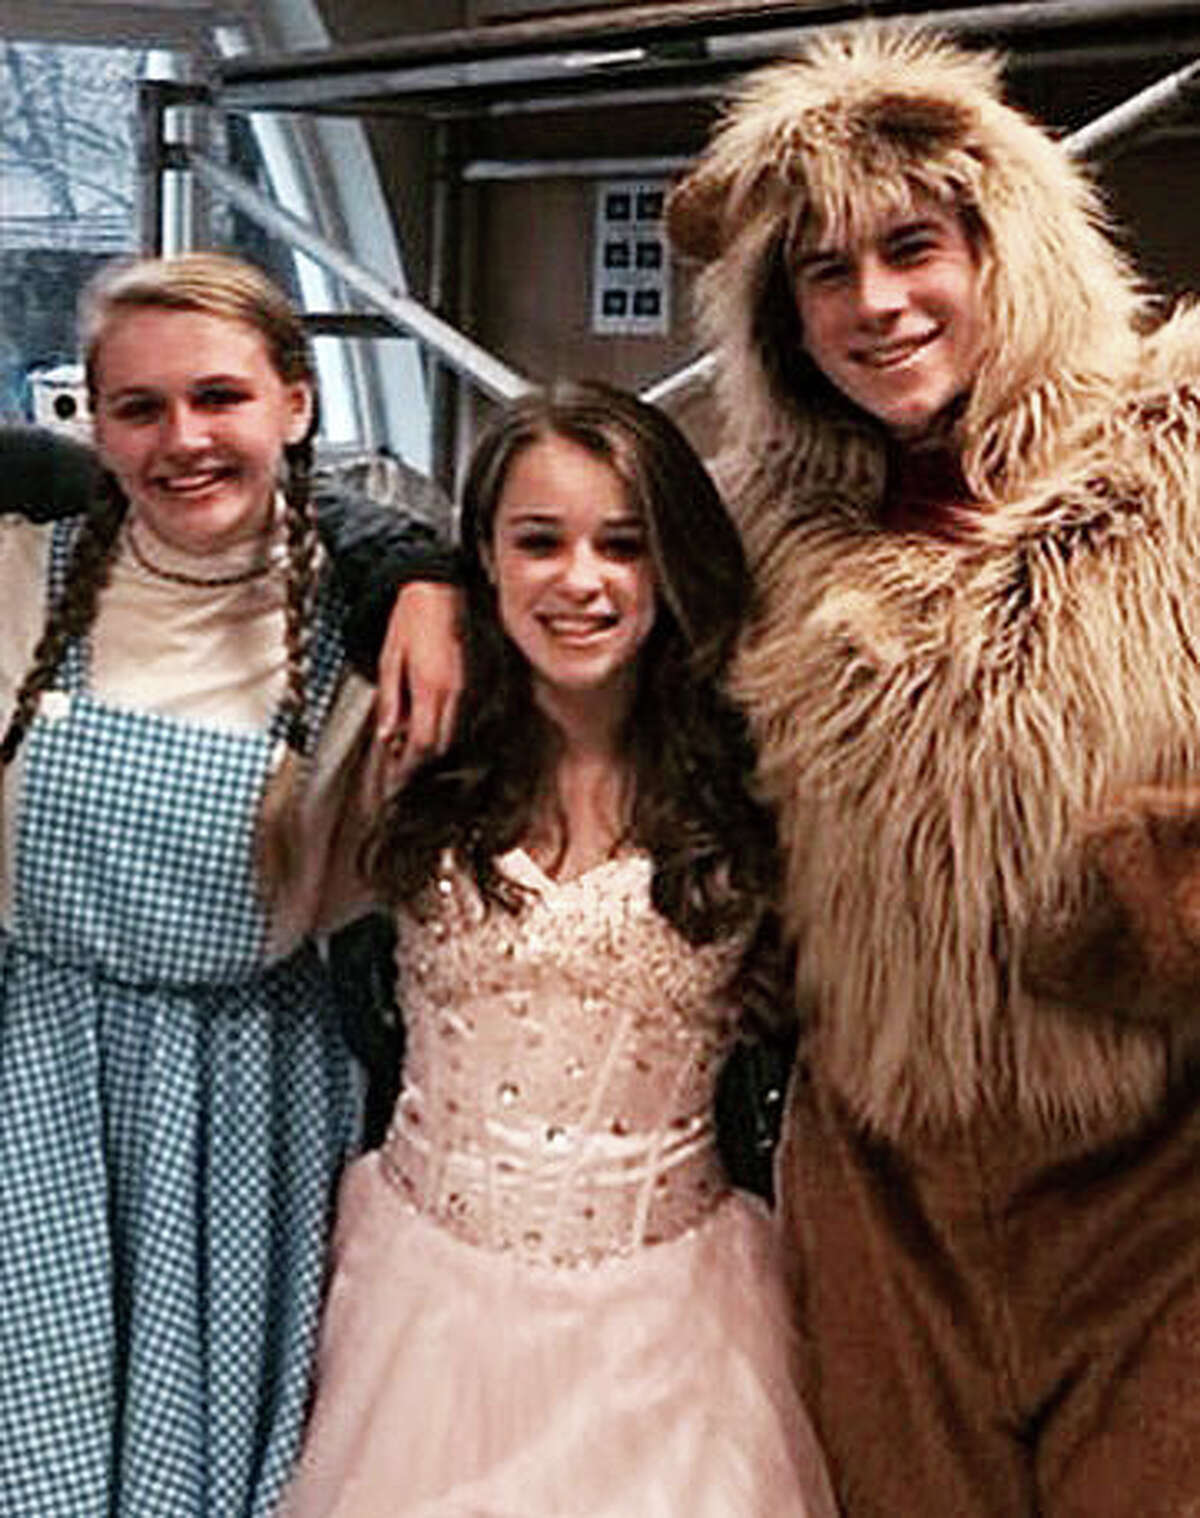 This provided photo shows Emily Fedorko, center, when she played Glinda the Witch in the Greenwich High School's production of Wizard of Oz in late 2013.